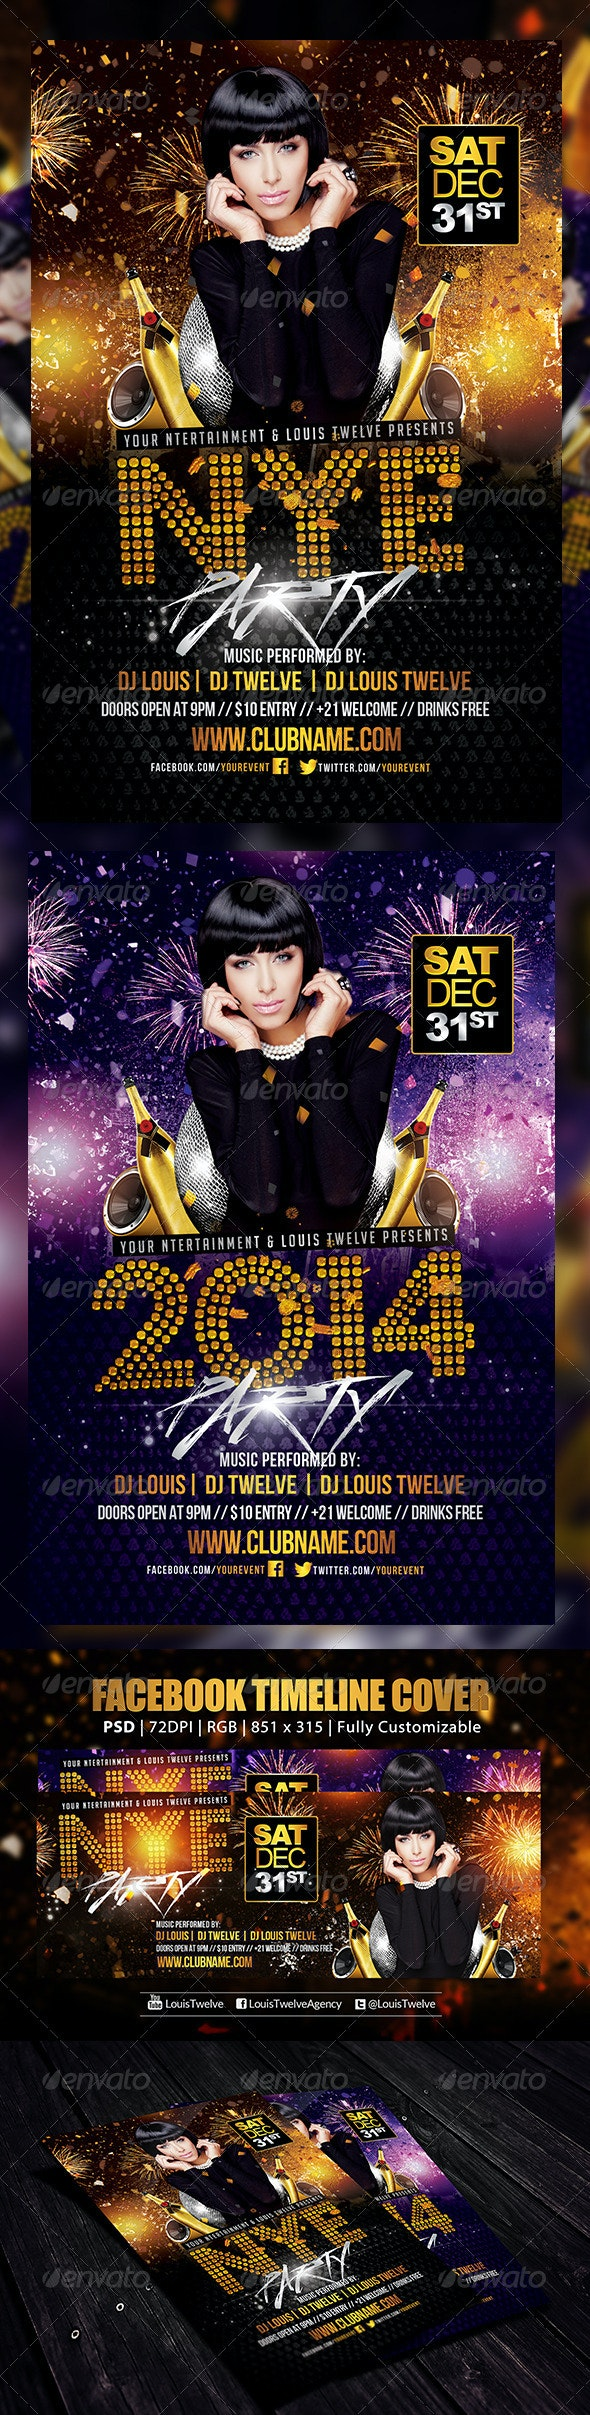 NYE Party 3 | Flyer + FB Cover - Holidays Events